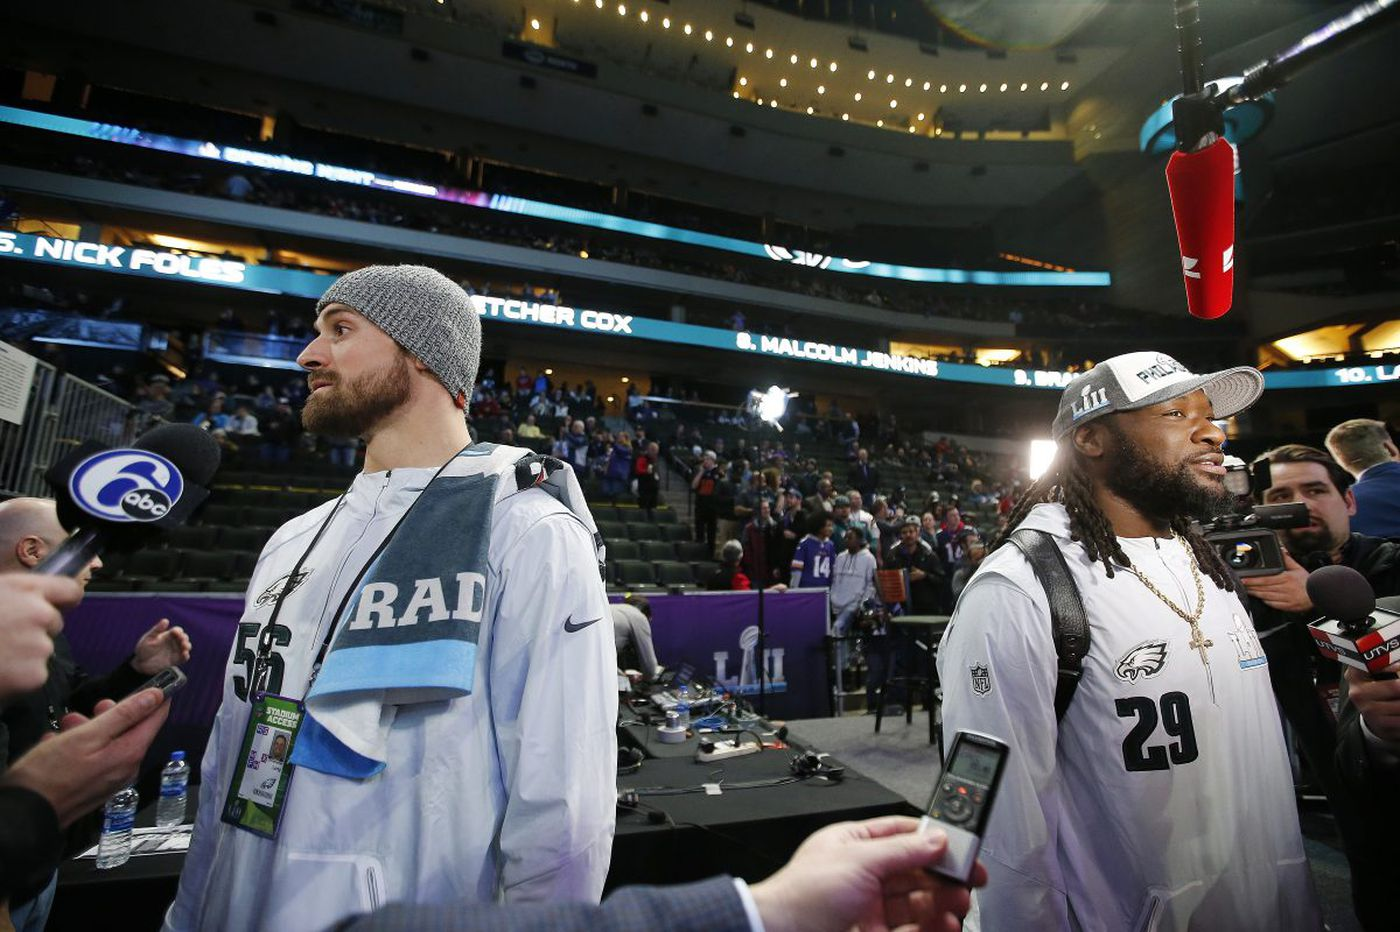 Chris Long, LeGarrette Blount join exclusive fraternity, winning back-to-back Super Bowls on different teams | Early Birds